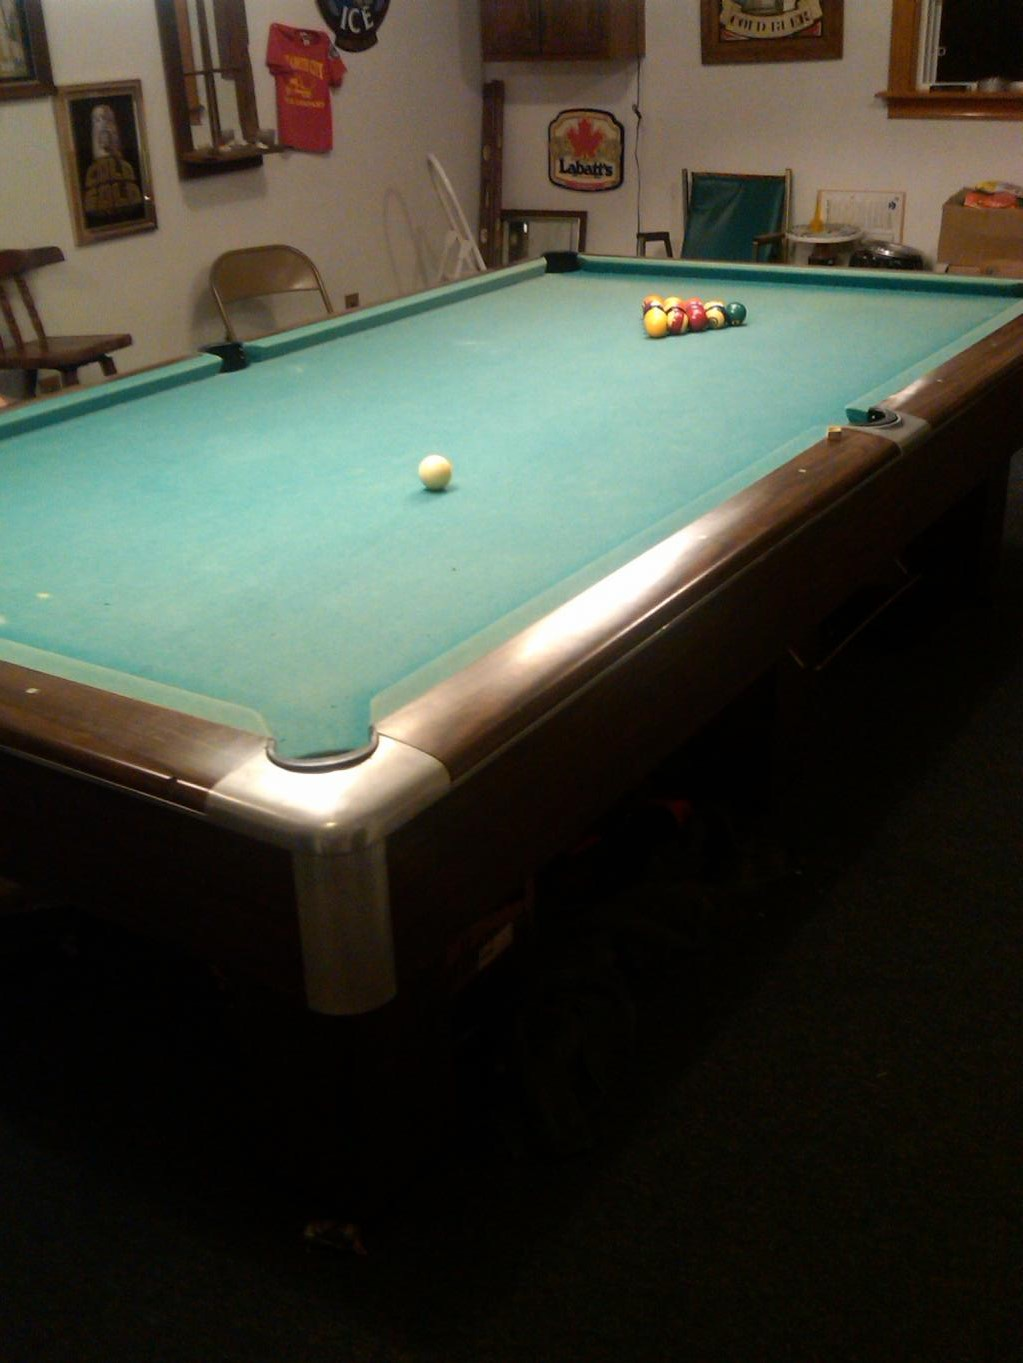 Luther Wimpy Lassiters personal 5 x 10 pool table, which apparently still has the old worsted wool cloth and billiard balls that Lassiter played with.